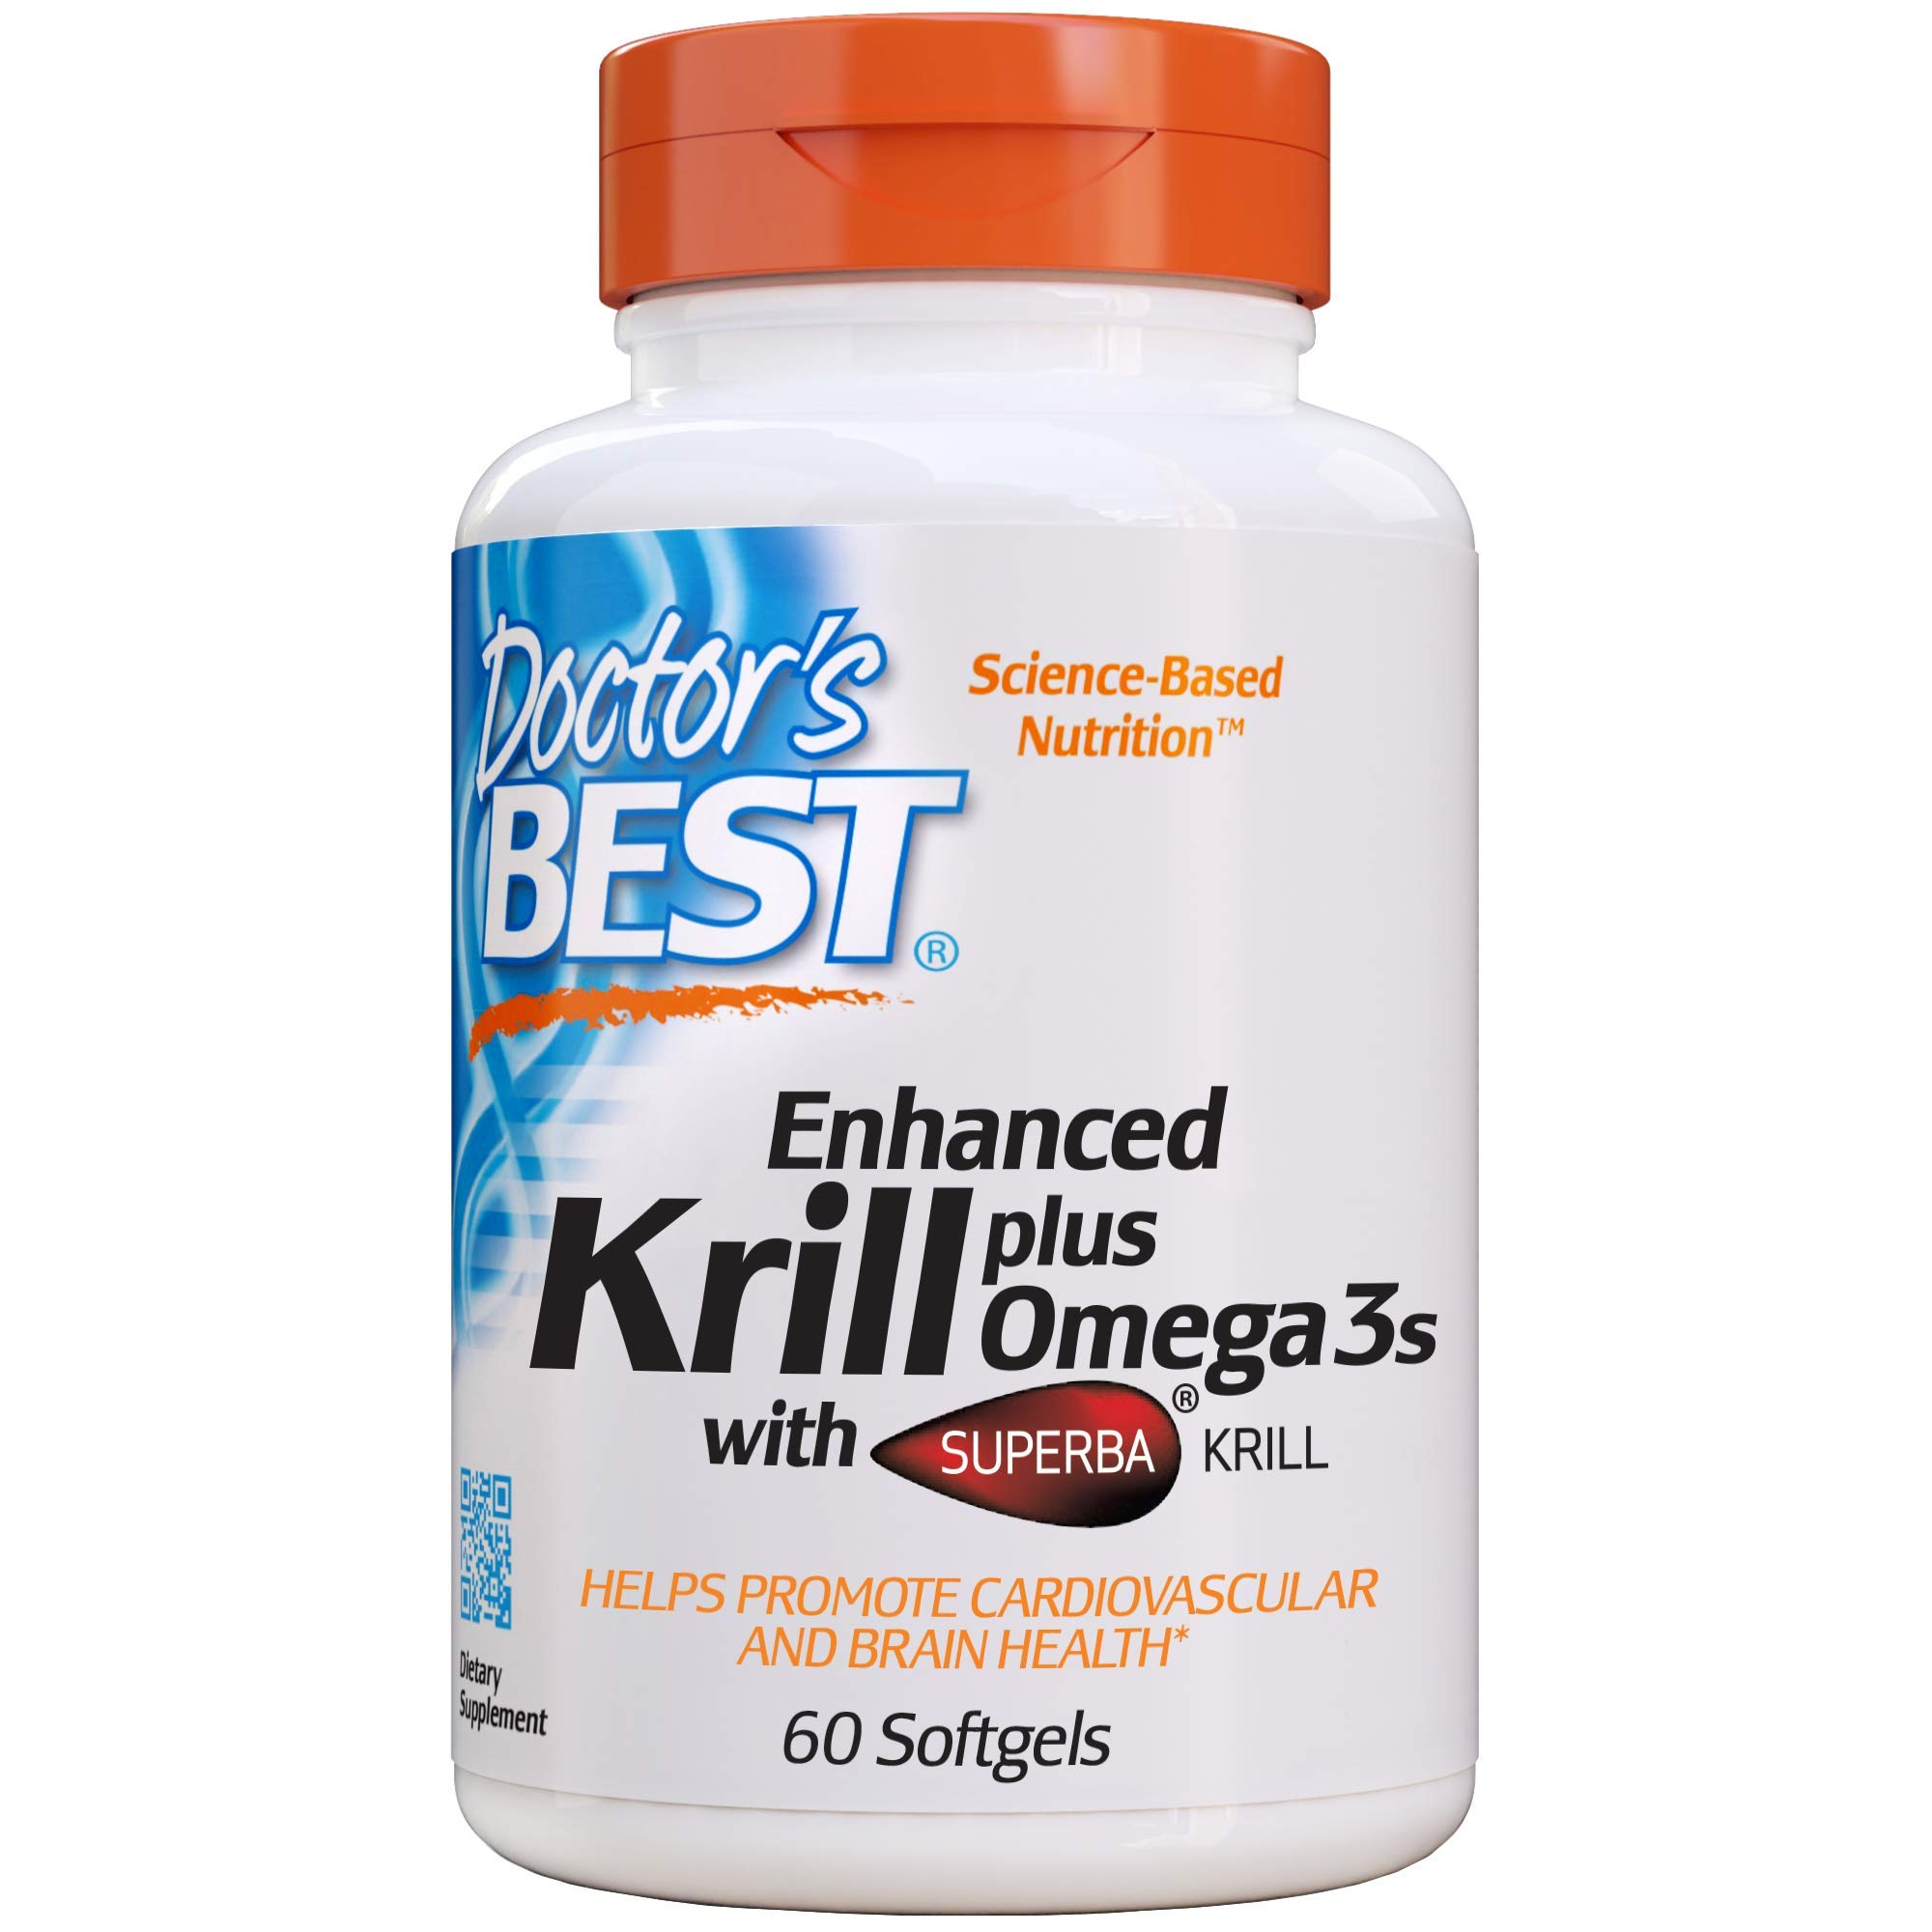 Doctor's Best Enhanced Krill Plus Omega 3s with SUPERBA Krill, 60 Softgels by Doctor's Best